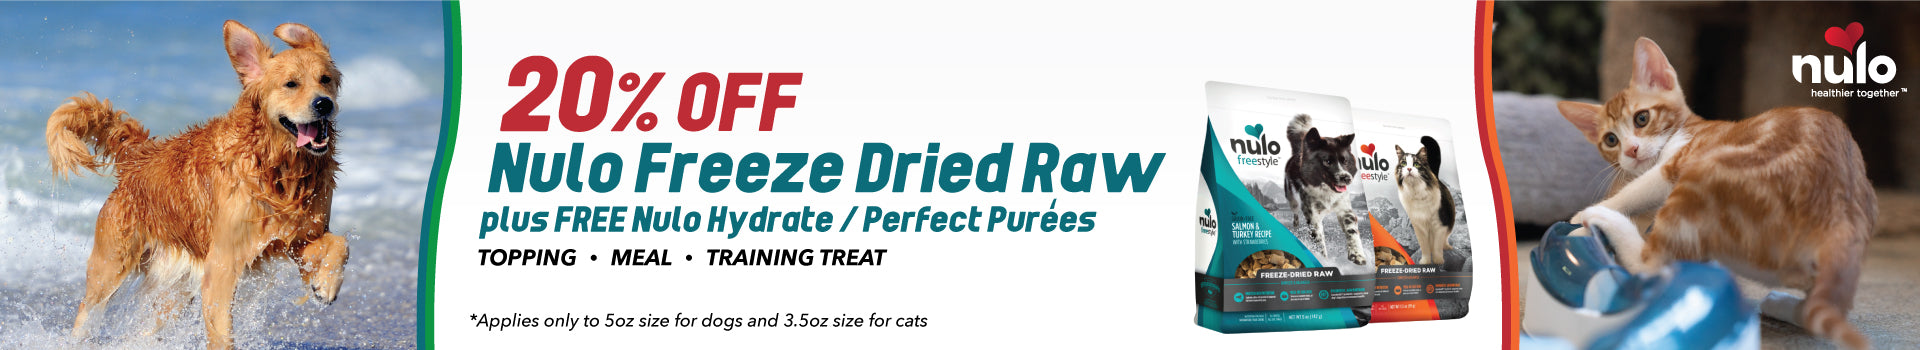 Enjoy 20% discount on NULO Freeze Dried Raw food and receive free gift with purchase online or in-store shopping.